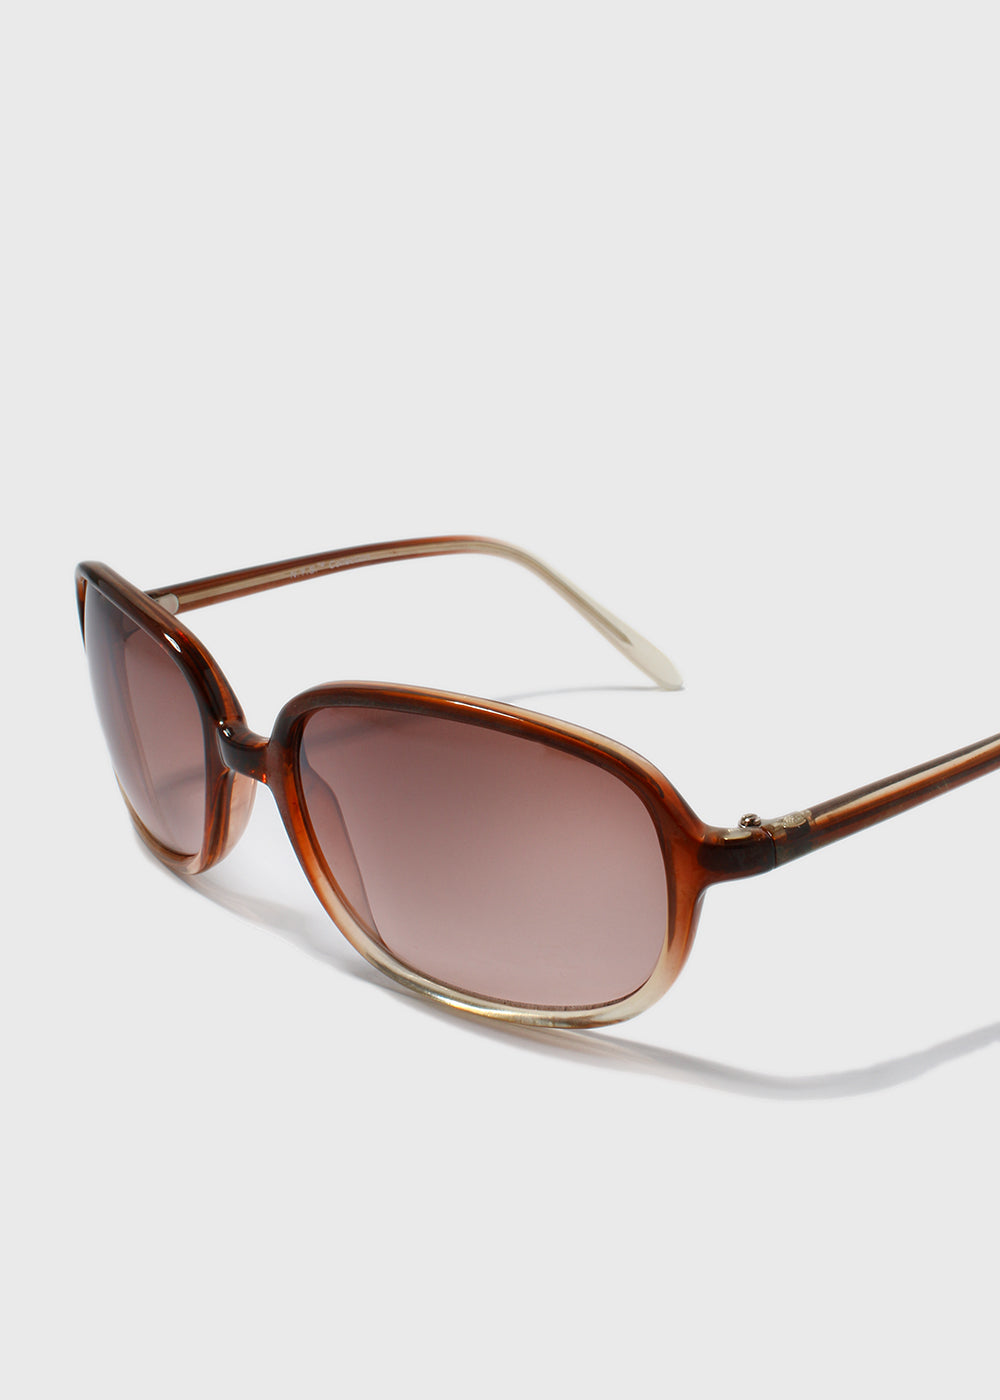 Modern Square Frame Sunglasses- Pink